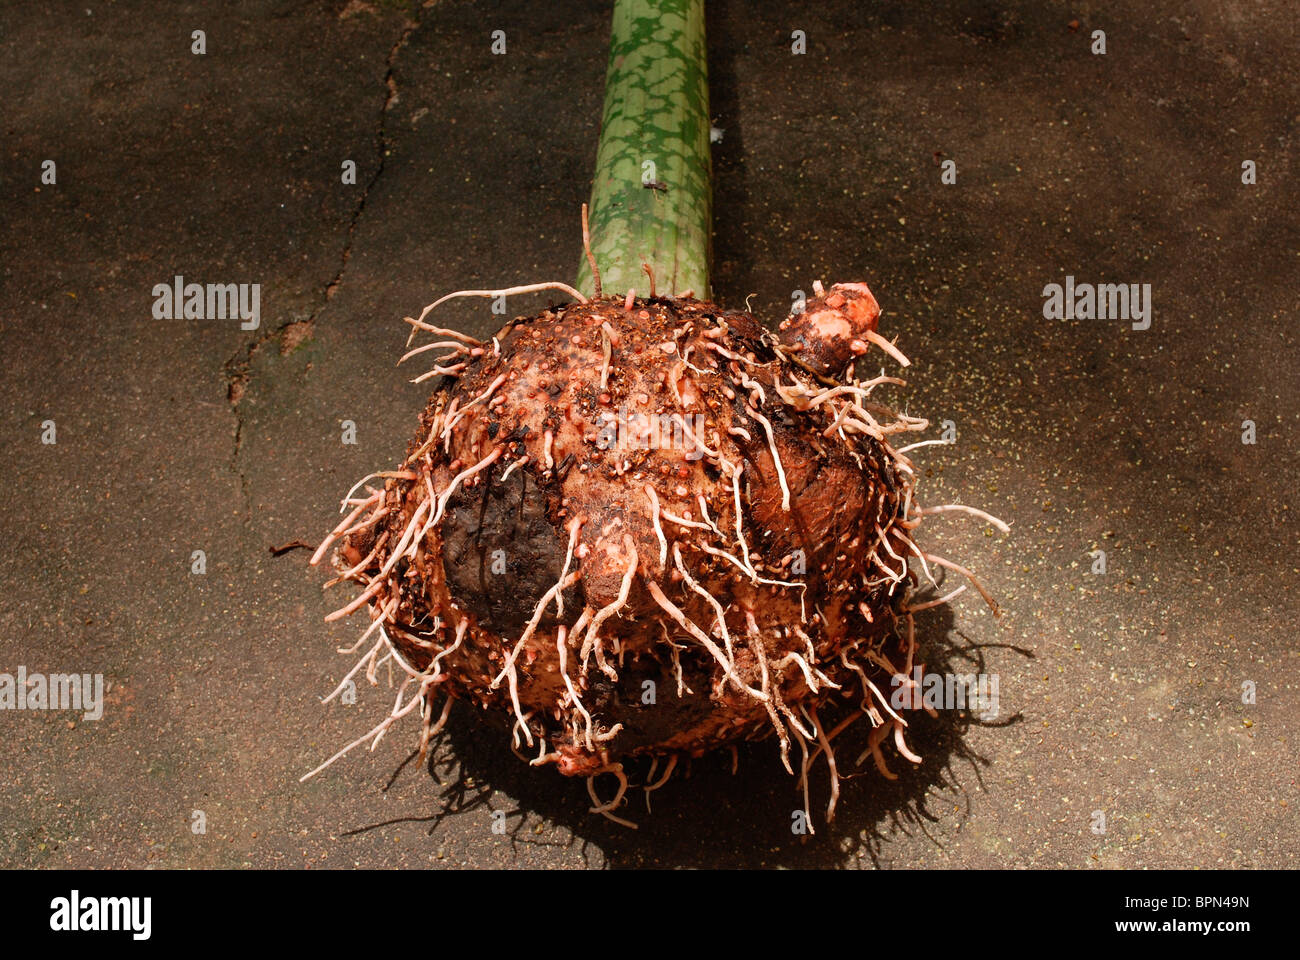 a plant root - Stock Image